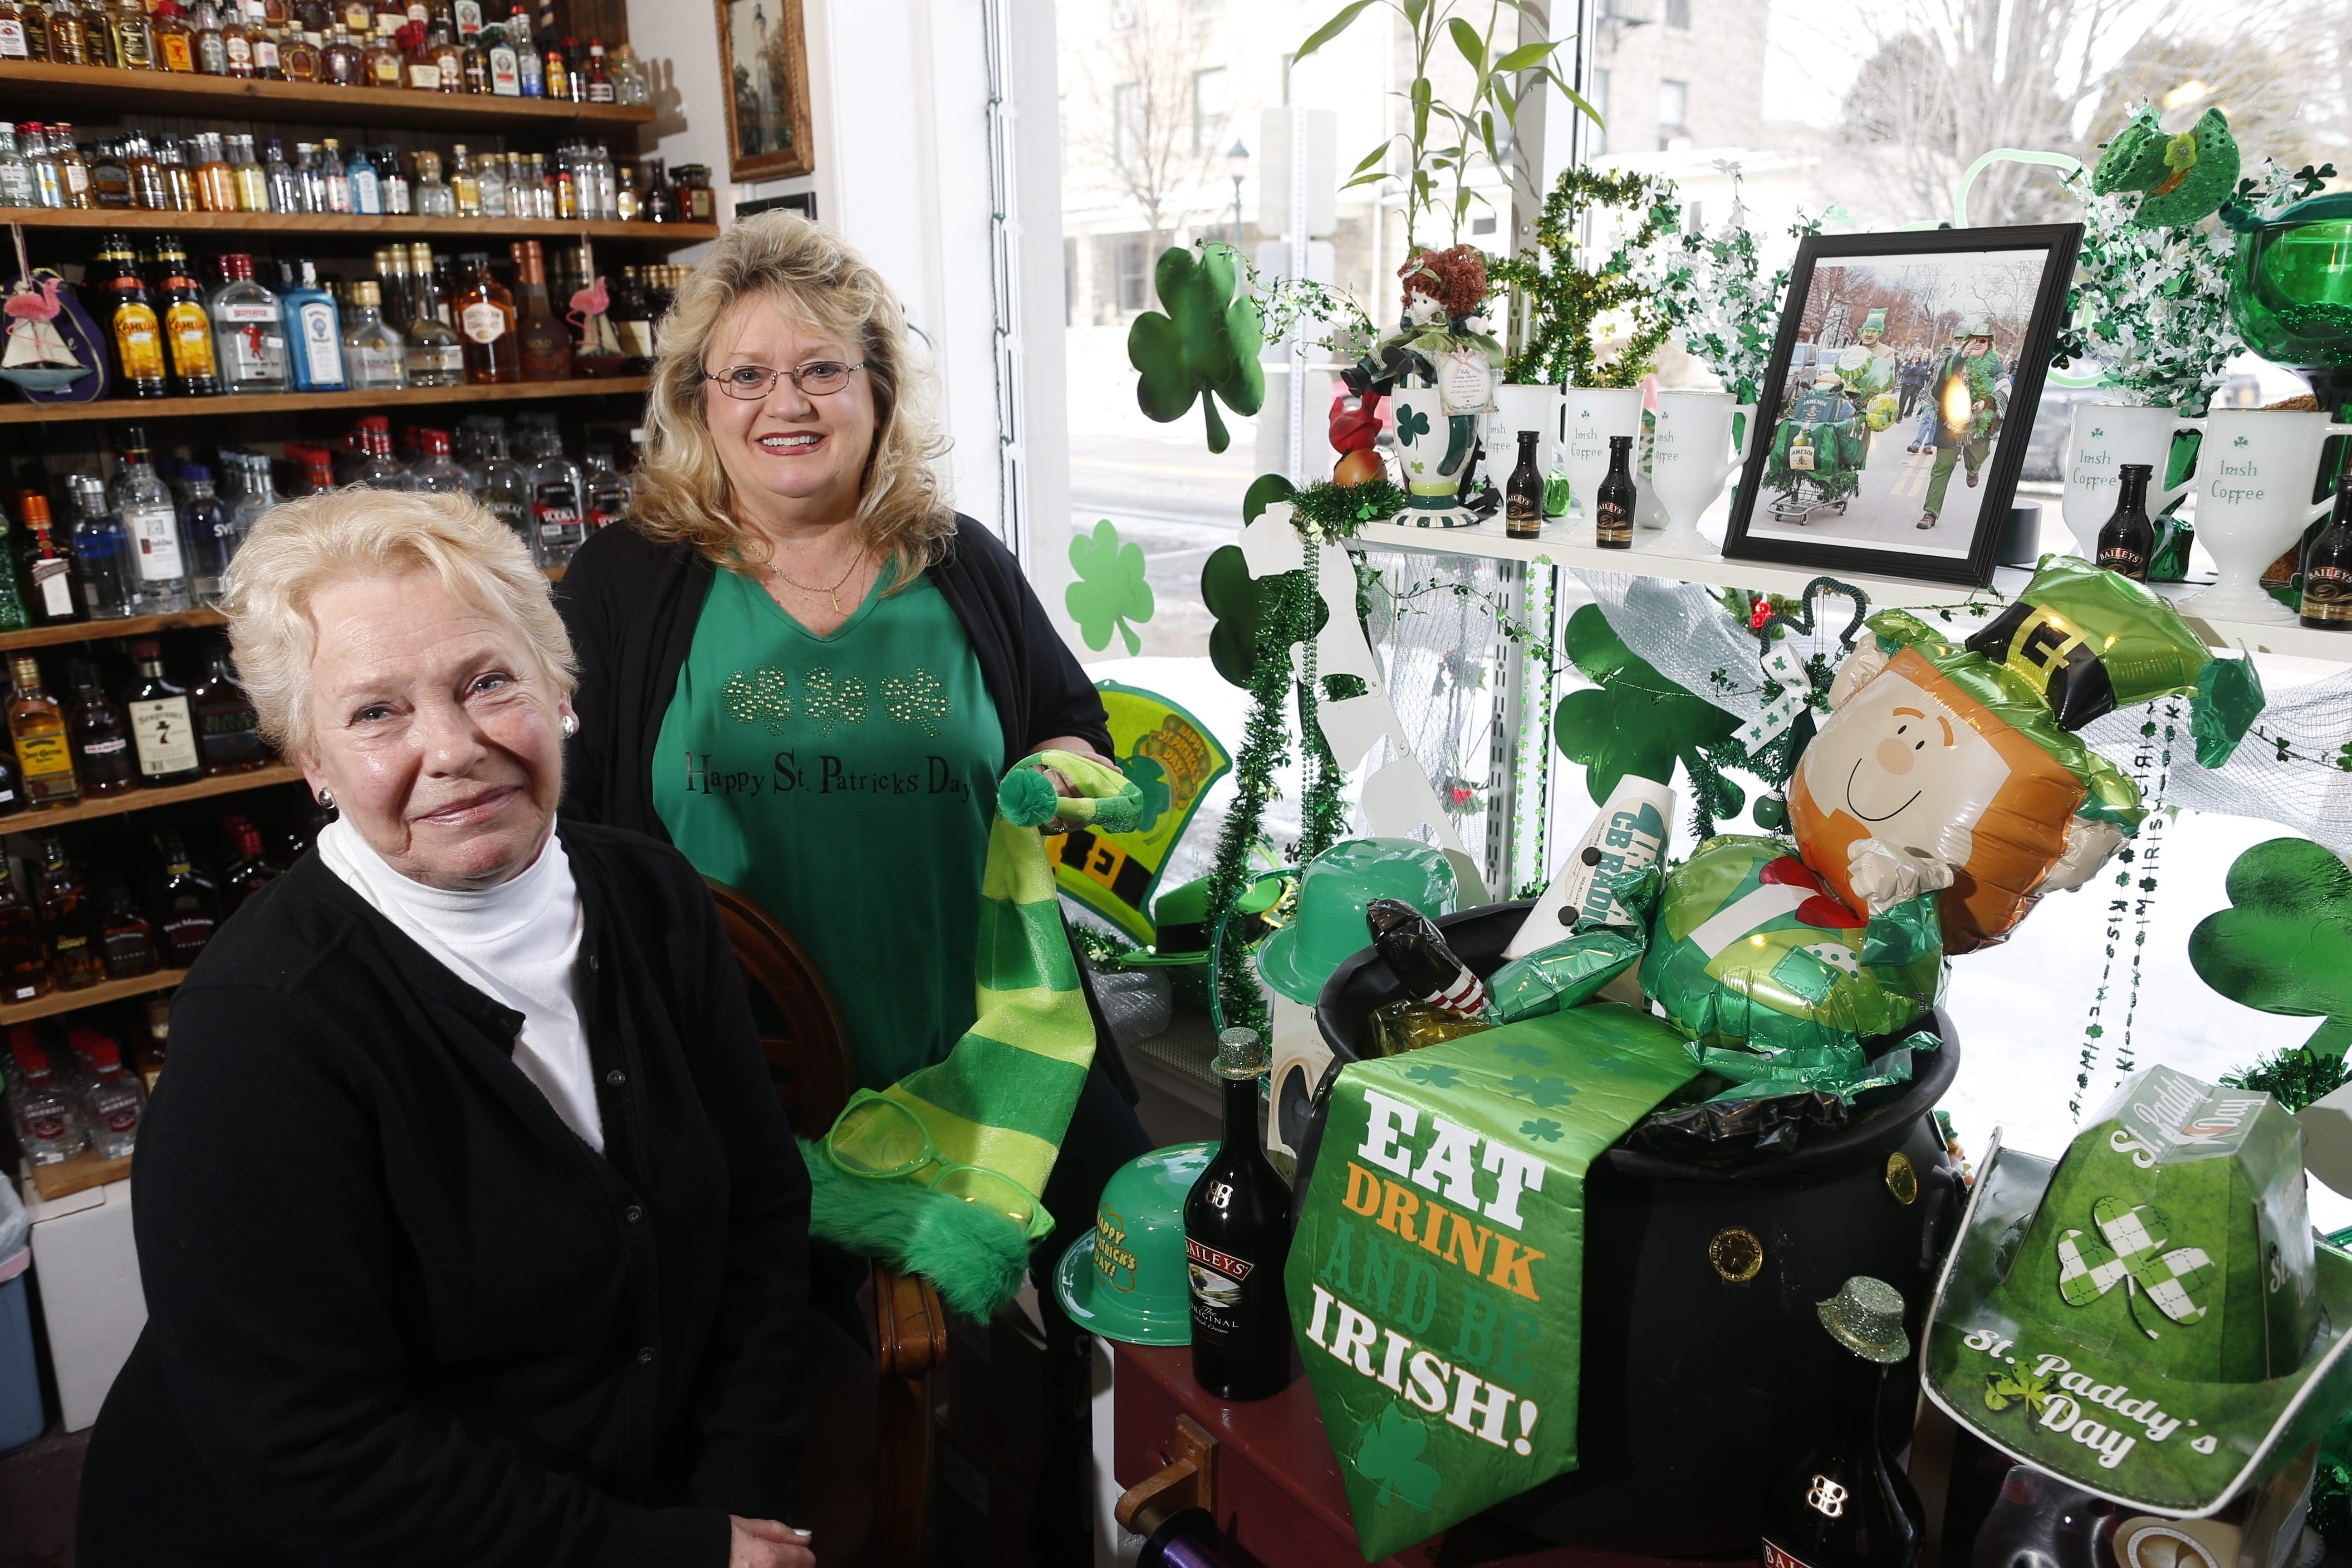 Dotty Riordan, left, and Cheryl Irish-Butera, president of the Youngstown Business Association, pose in front of a St. Patrick's Day display at Anchor Spirits in Youngstown.